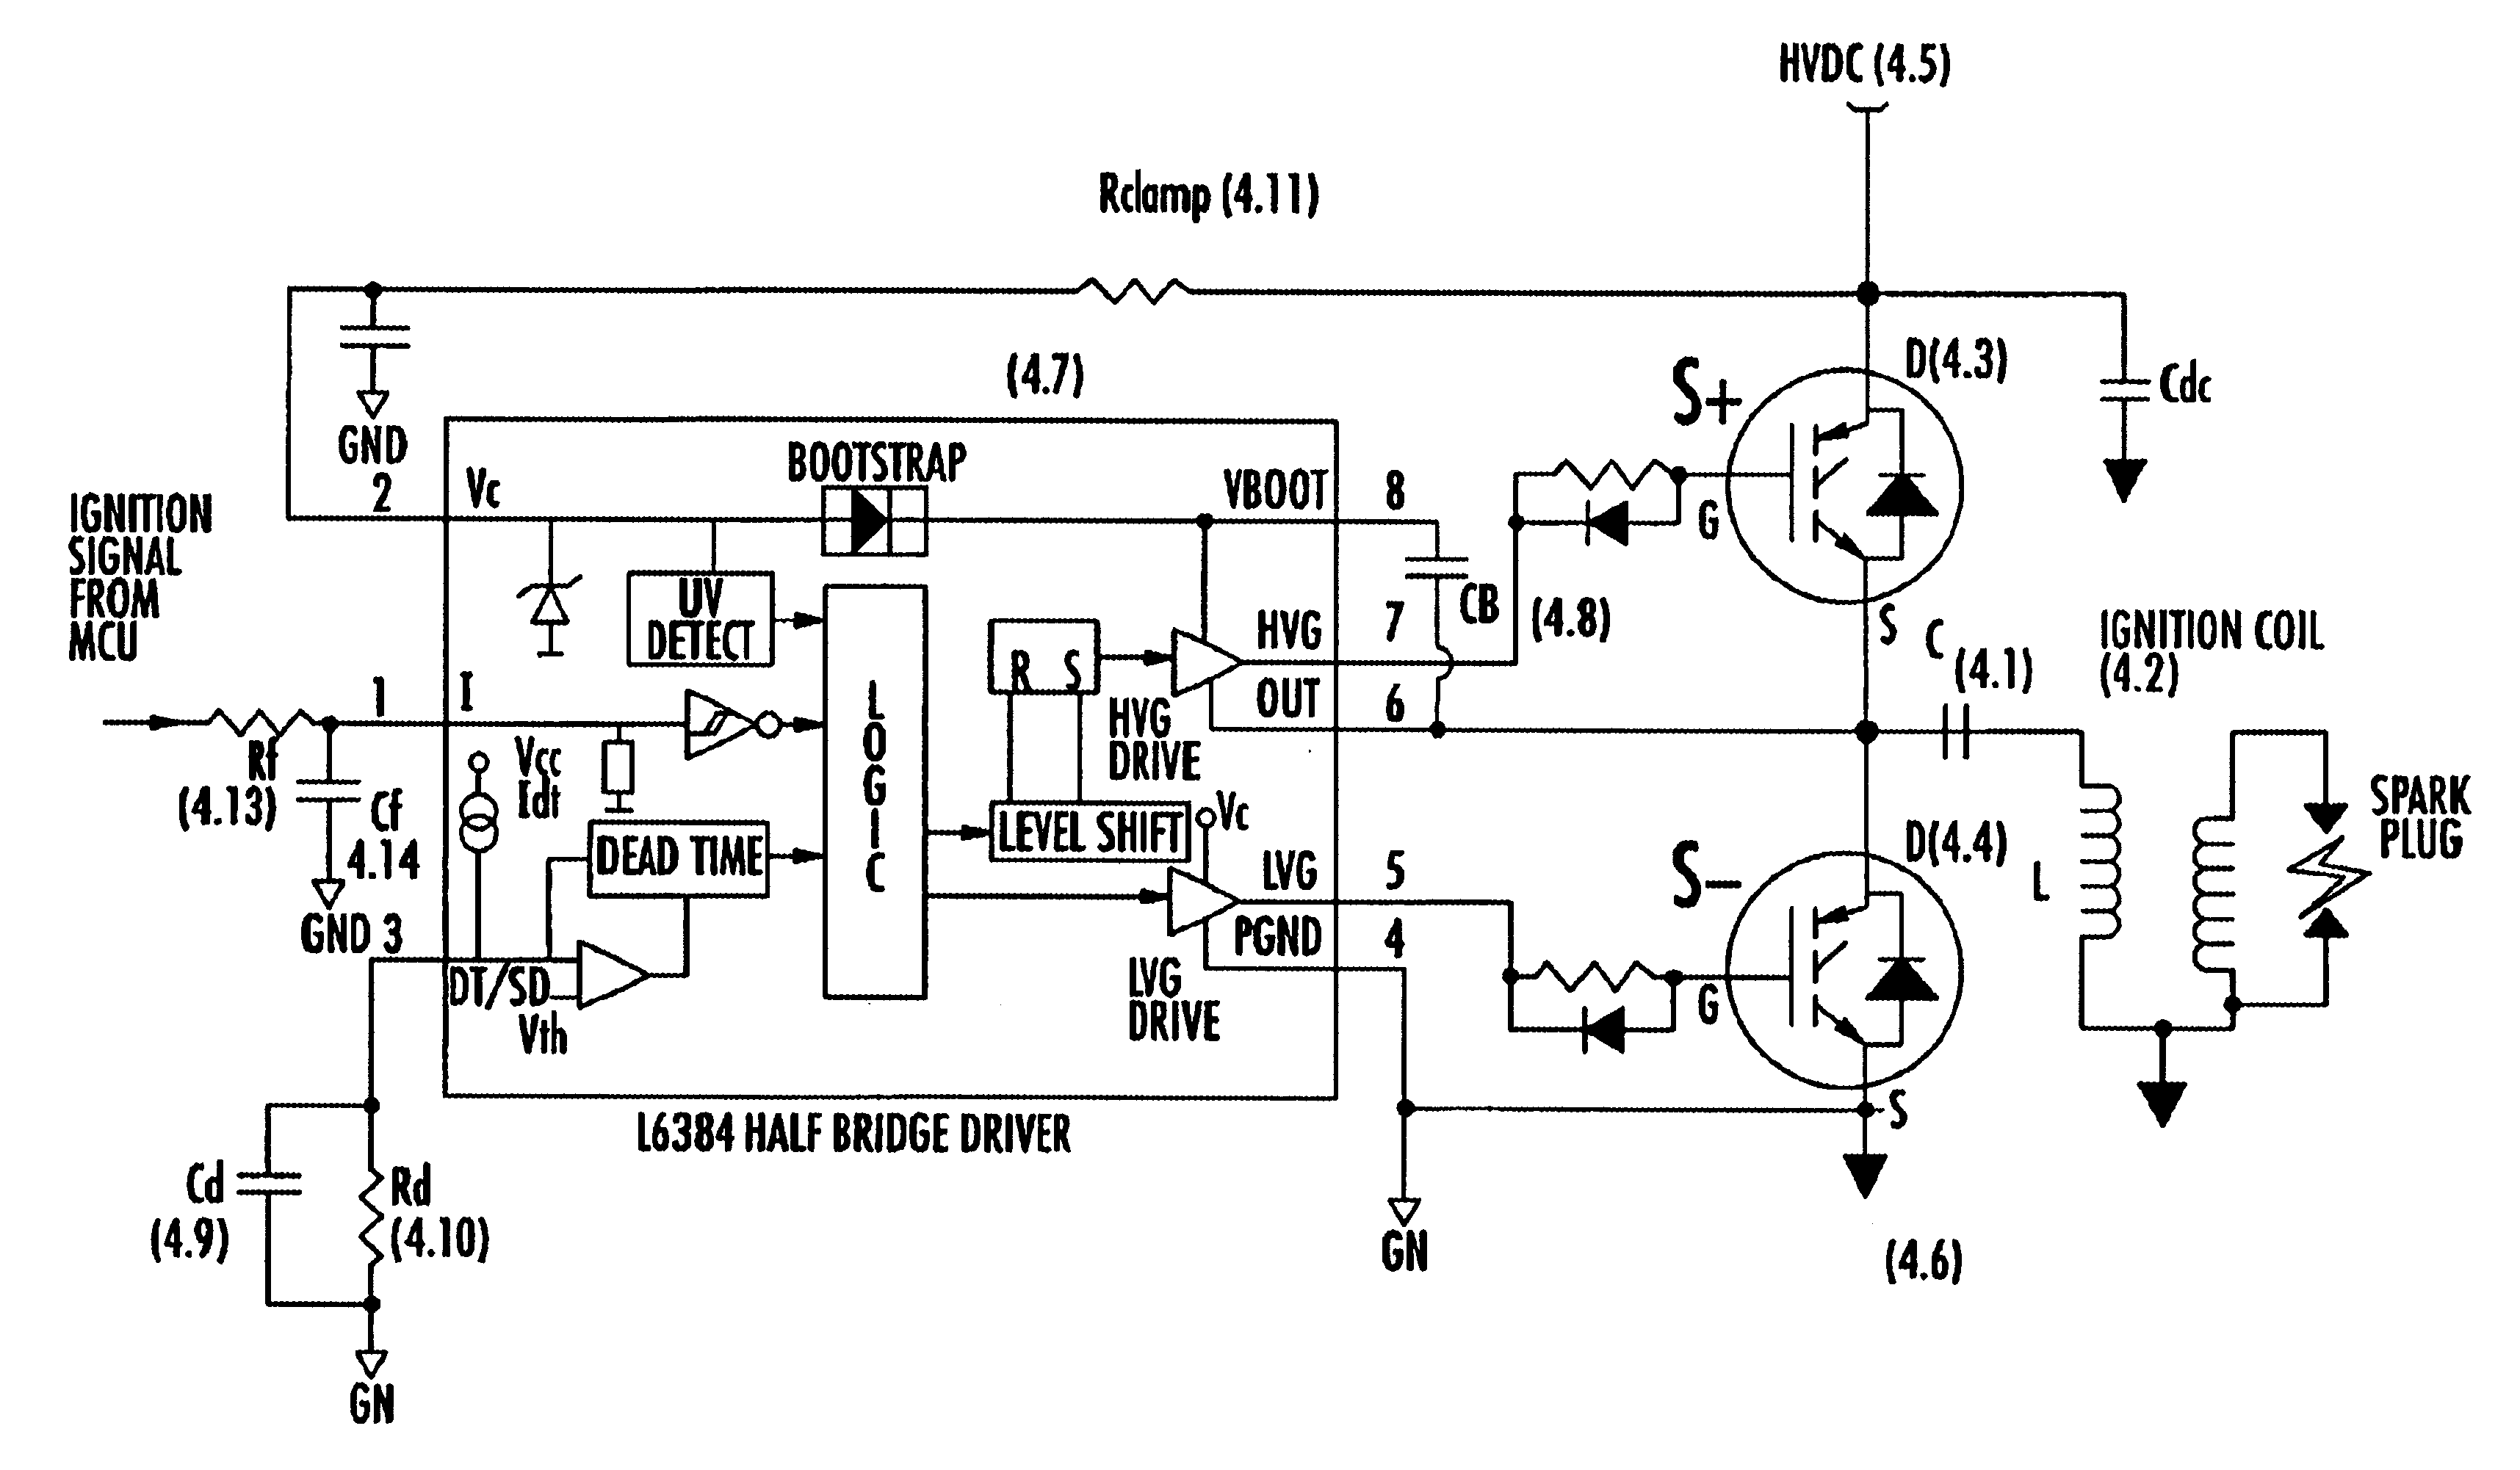 US06662792 20031216 D00000 patent us6662792 capacitor discharge ignition (cdi) system ignition coil circuit diagram at et-consult.org